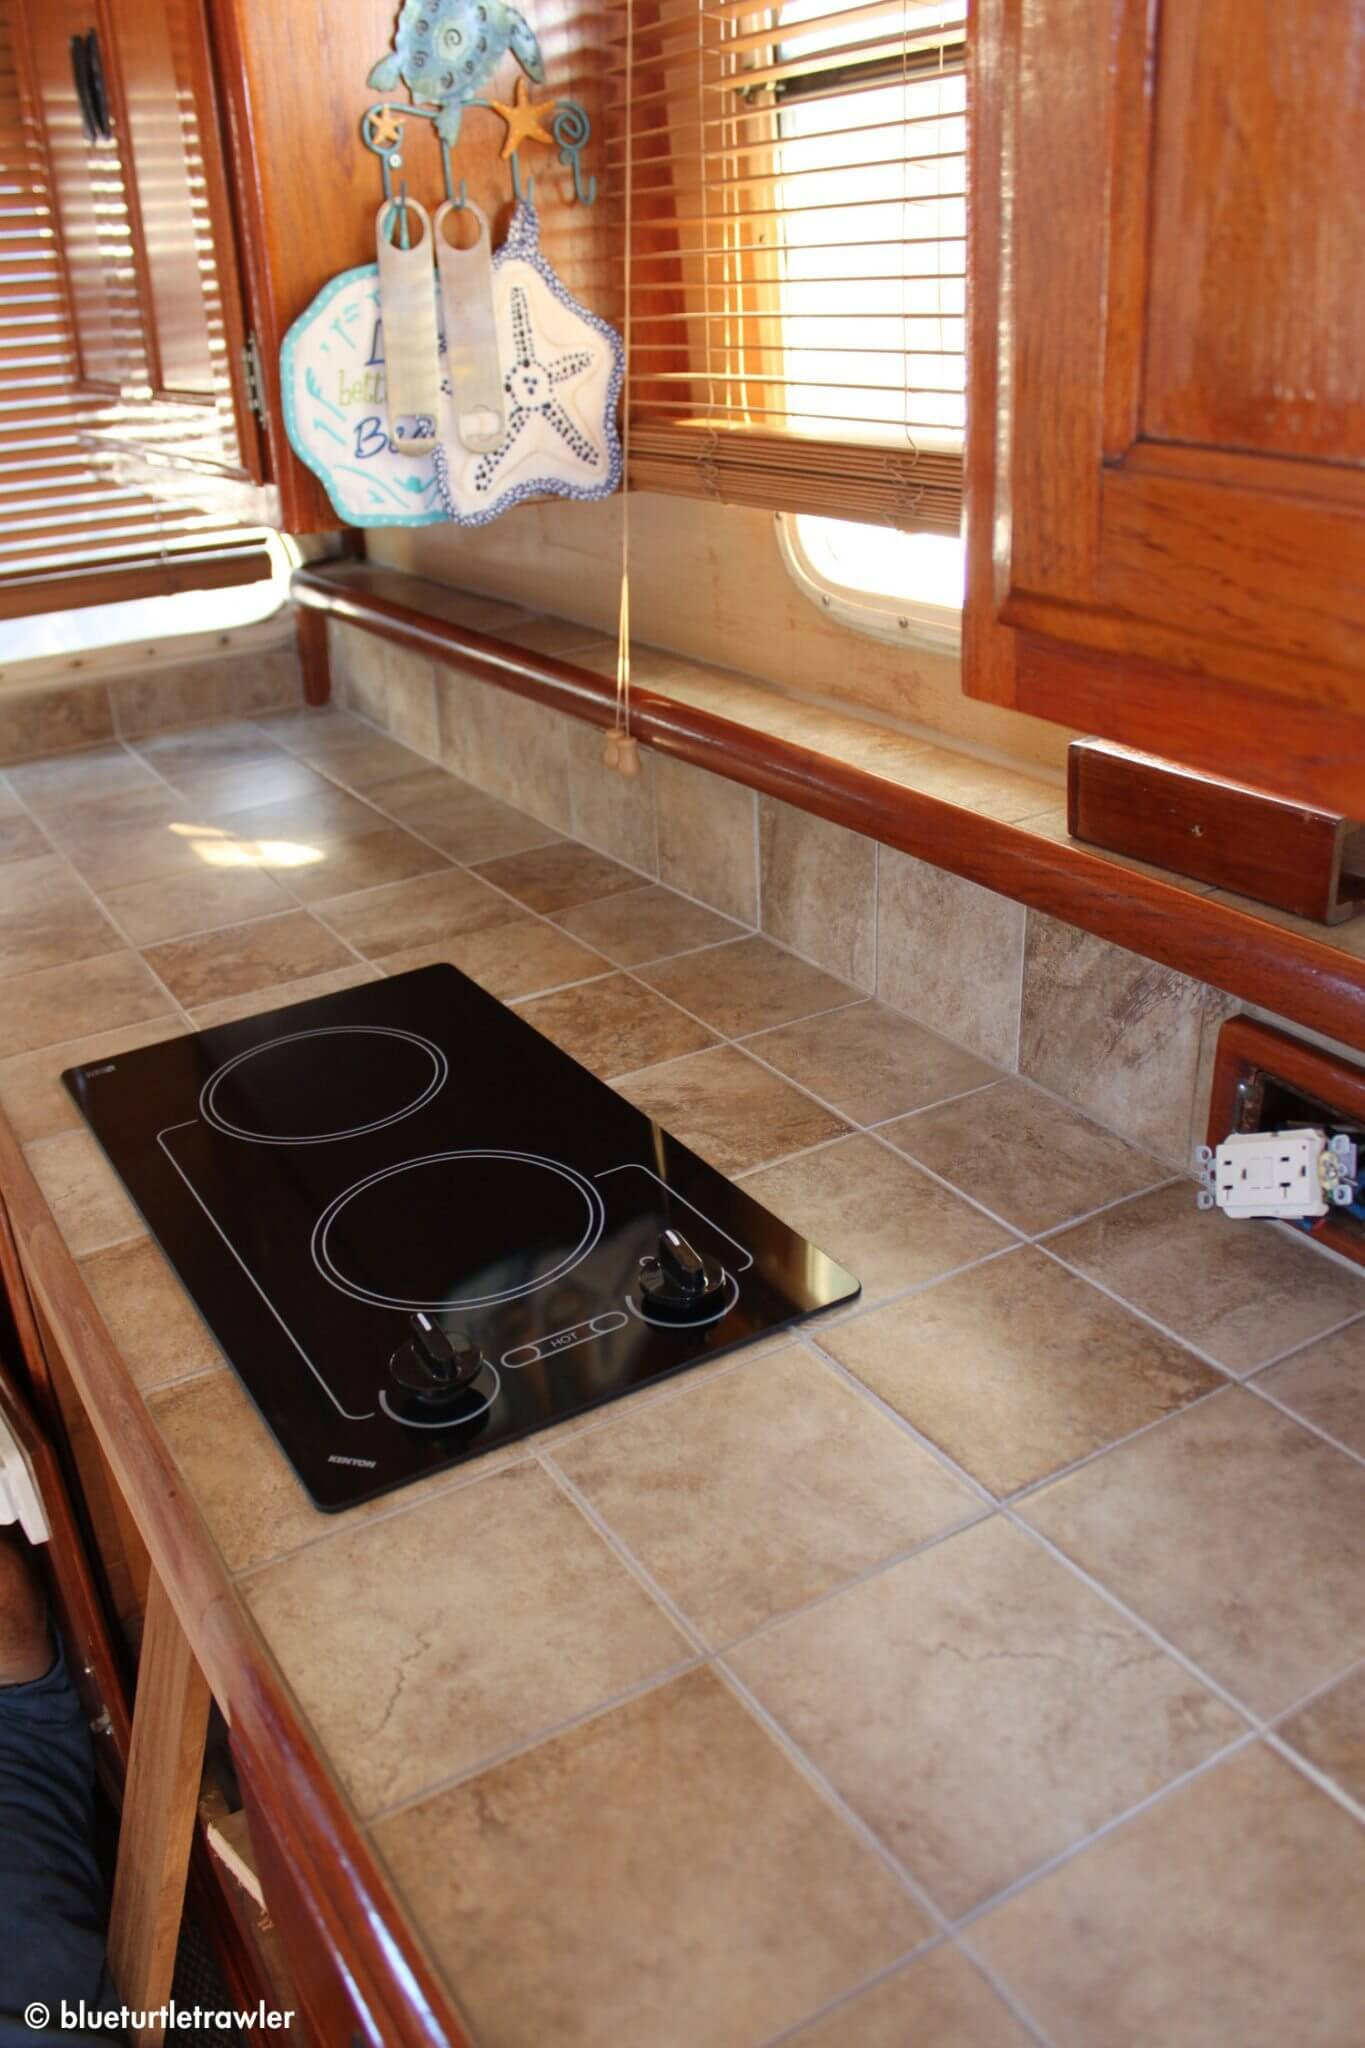 AFTER: The cooktop is dropped in and hooked up the next day